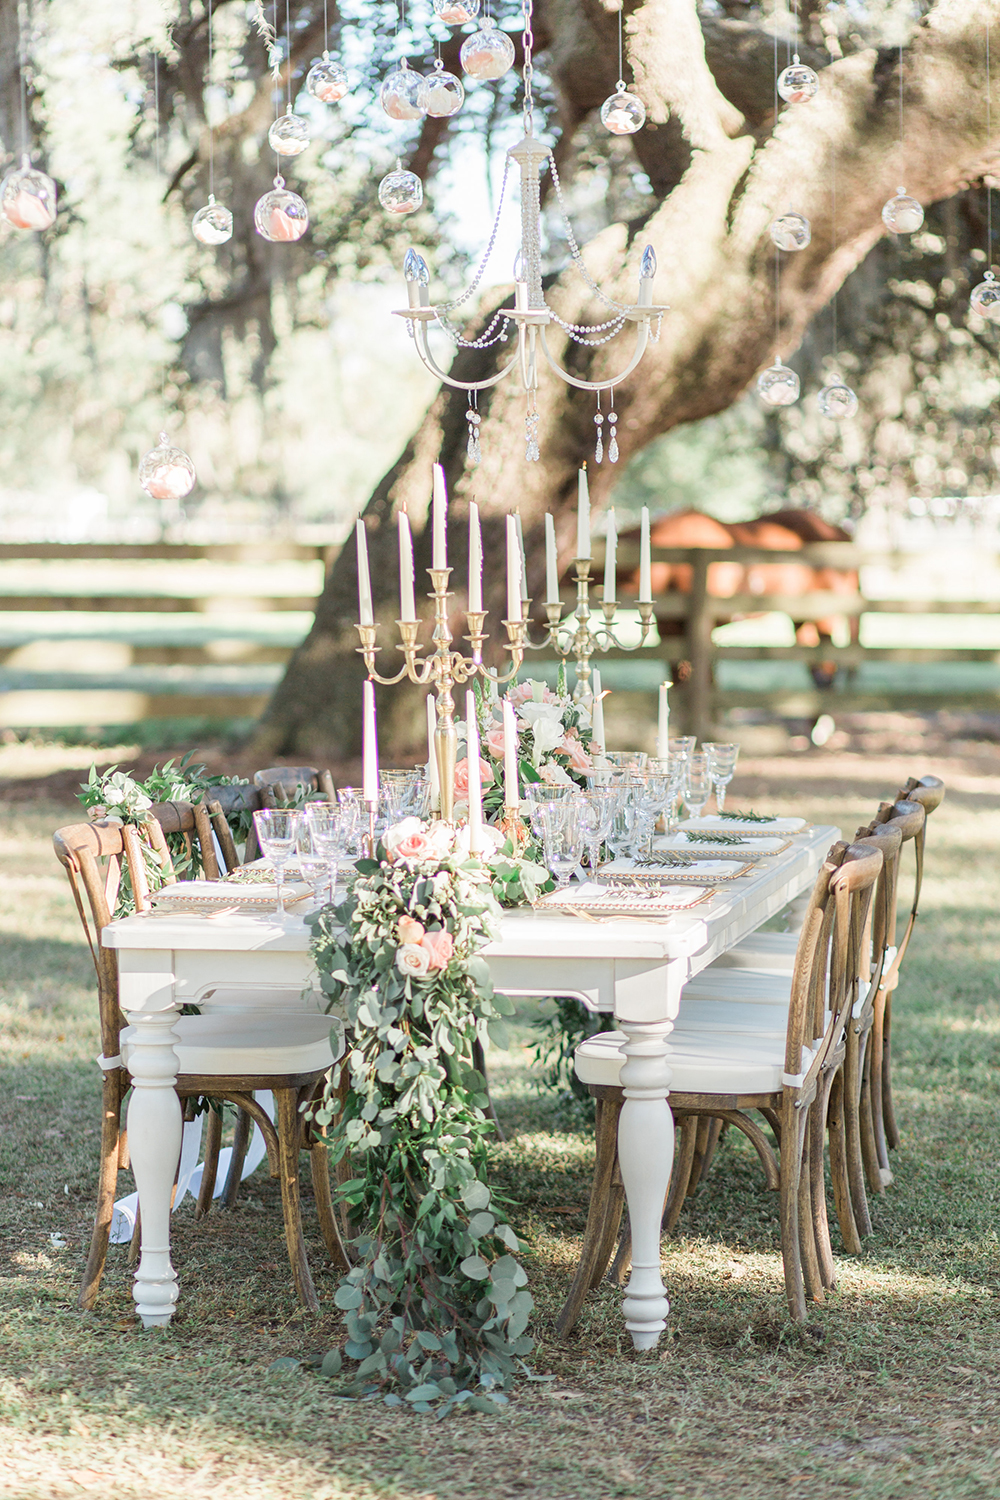 wedding tablescapes - photo by Landon Hendrick Photography http://ruffledblog.com/southern-garden-chic-wedding-inspiration